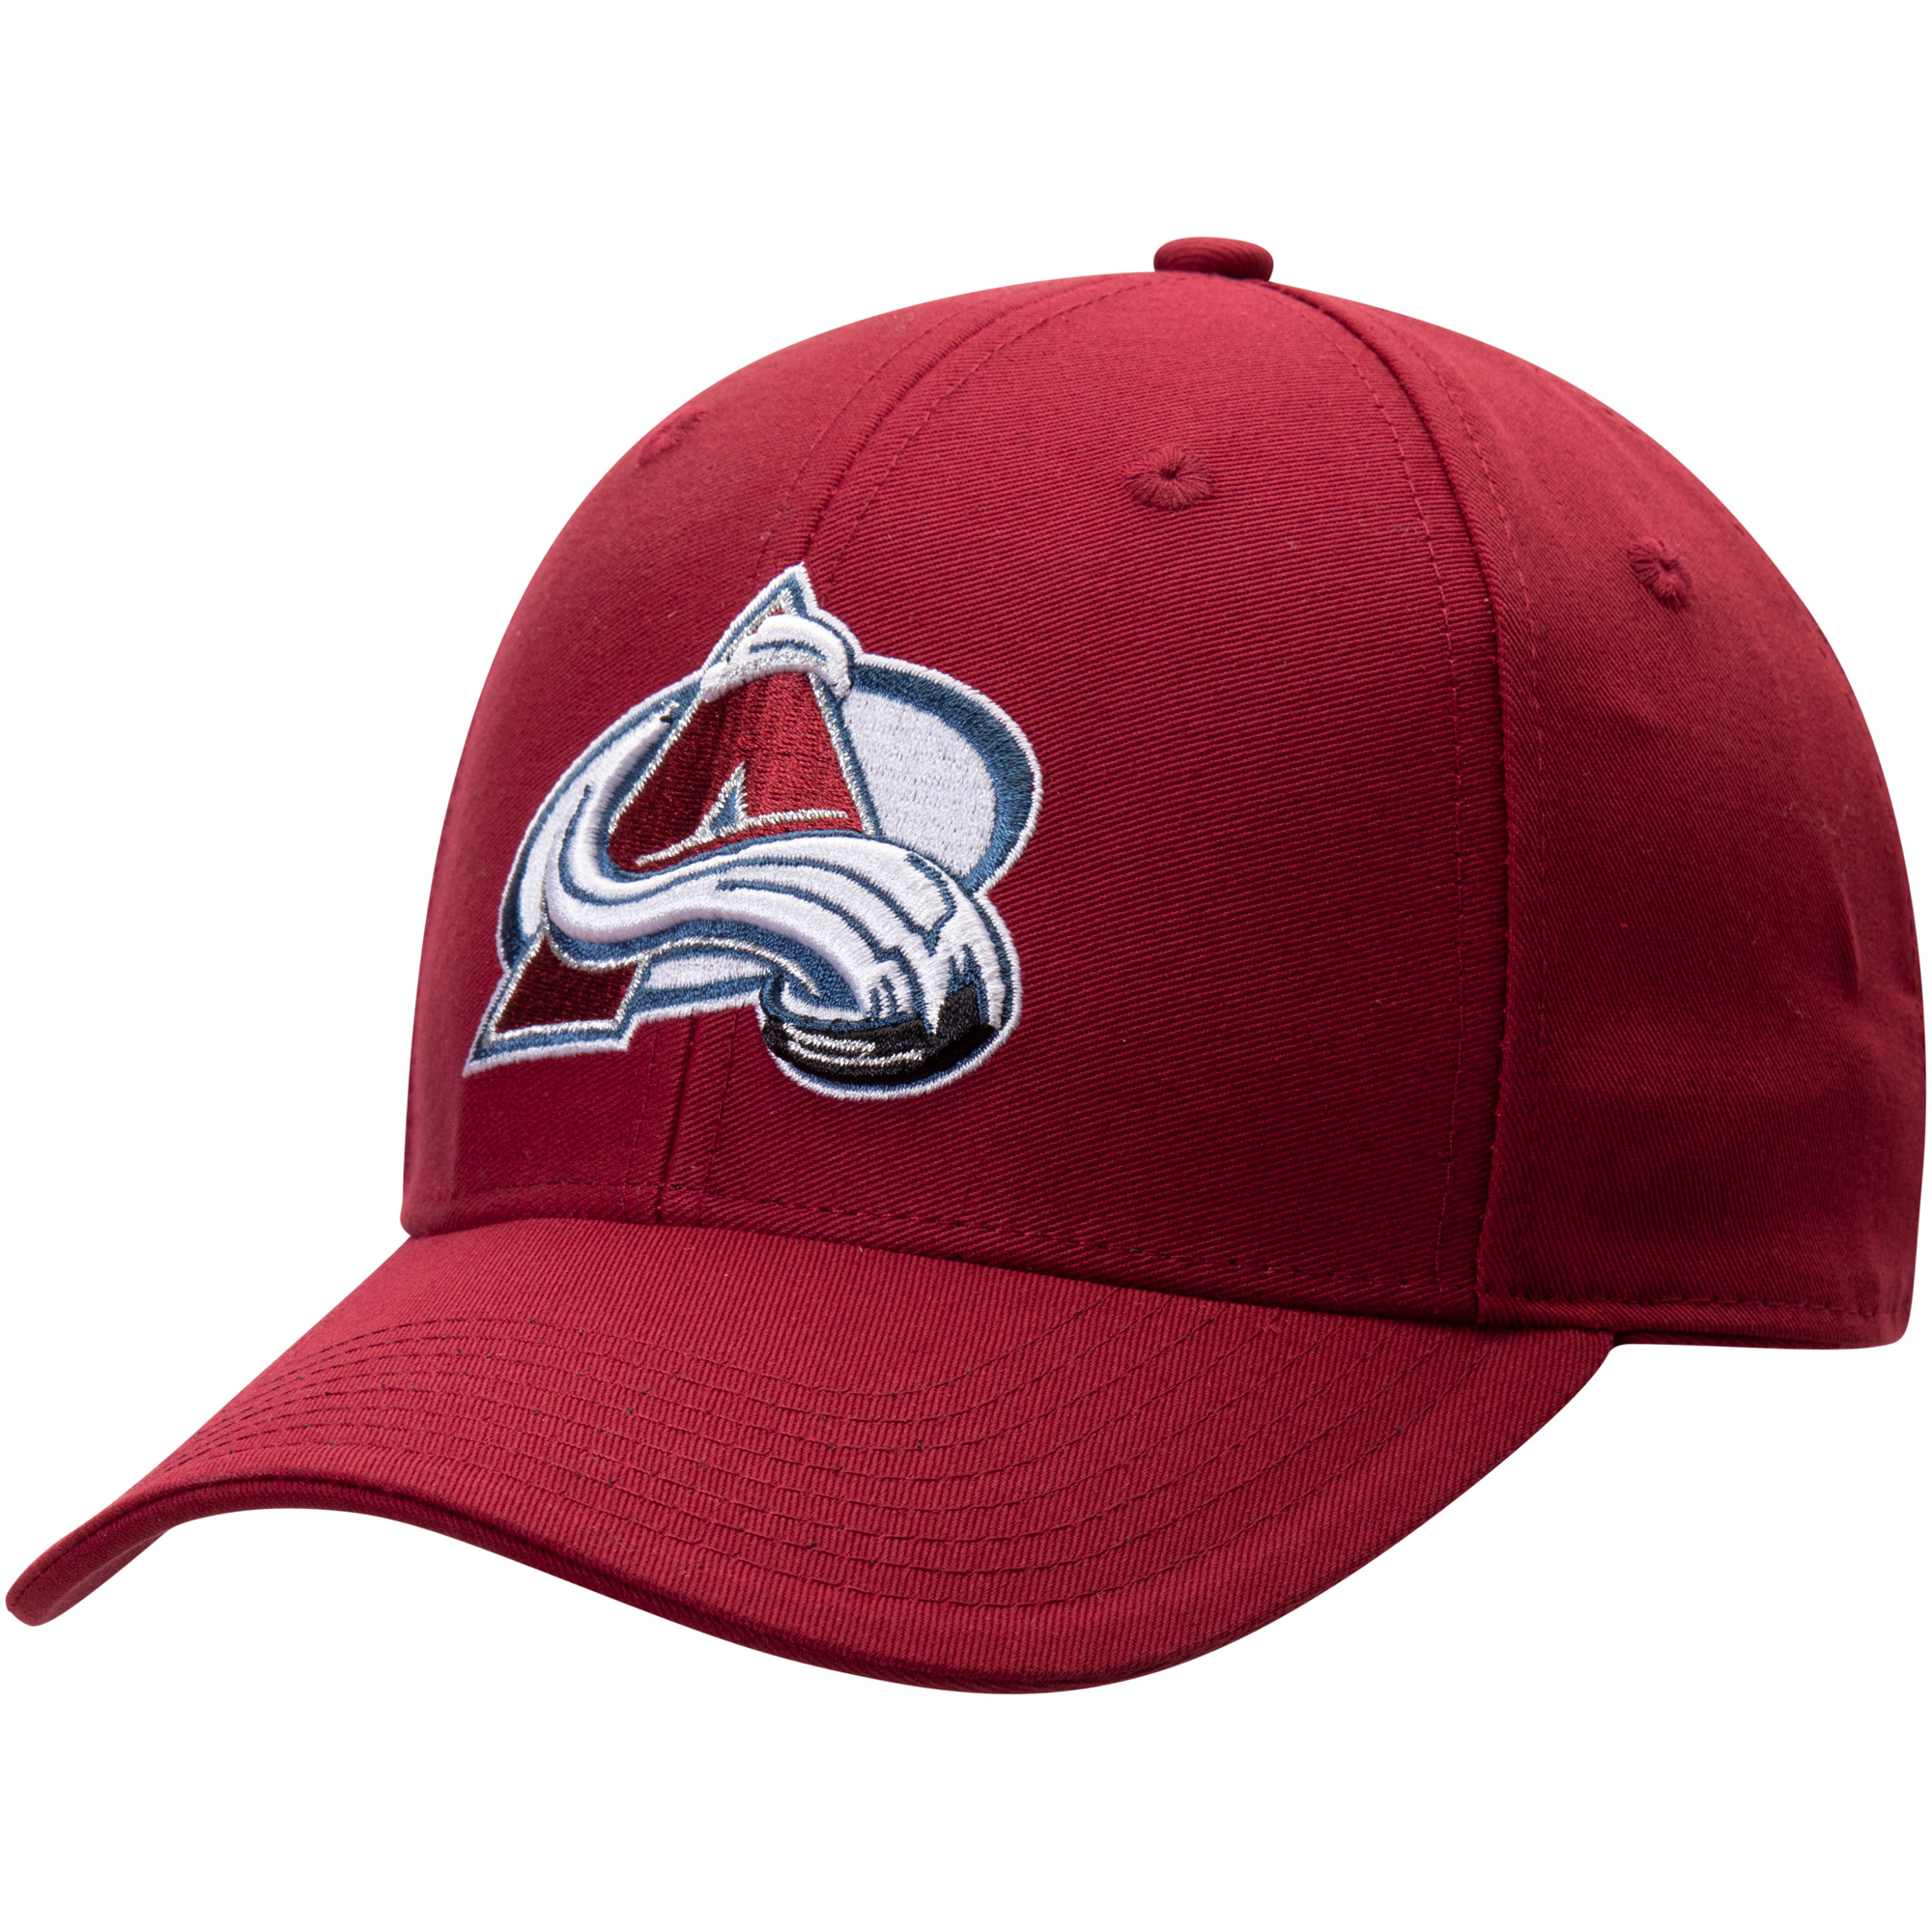 Men's Fanatics Branded Burgundy Colorado Avalanche Adjustable Hat - OSFA